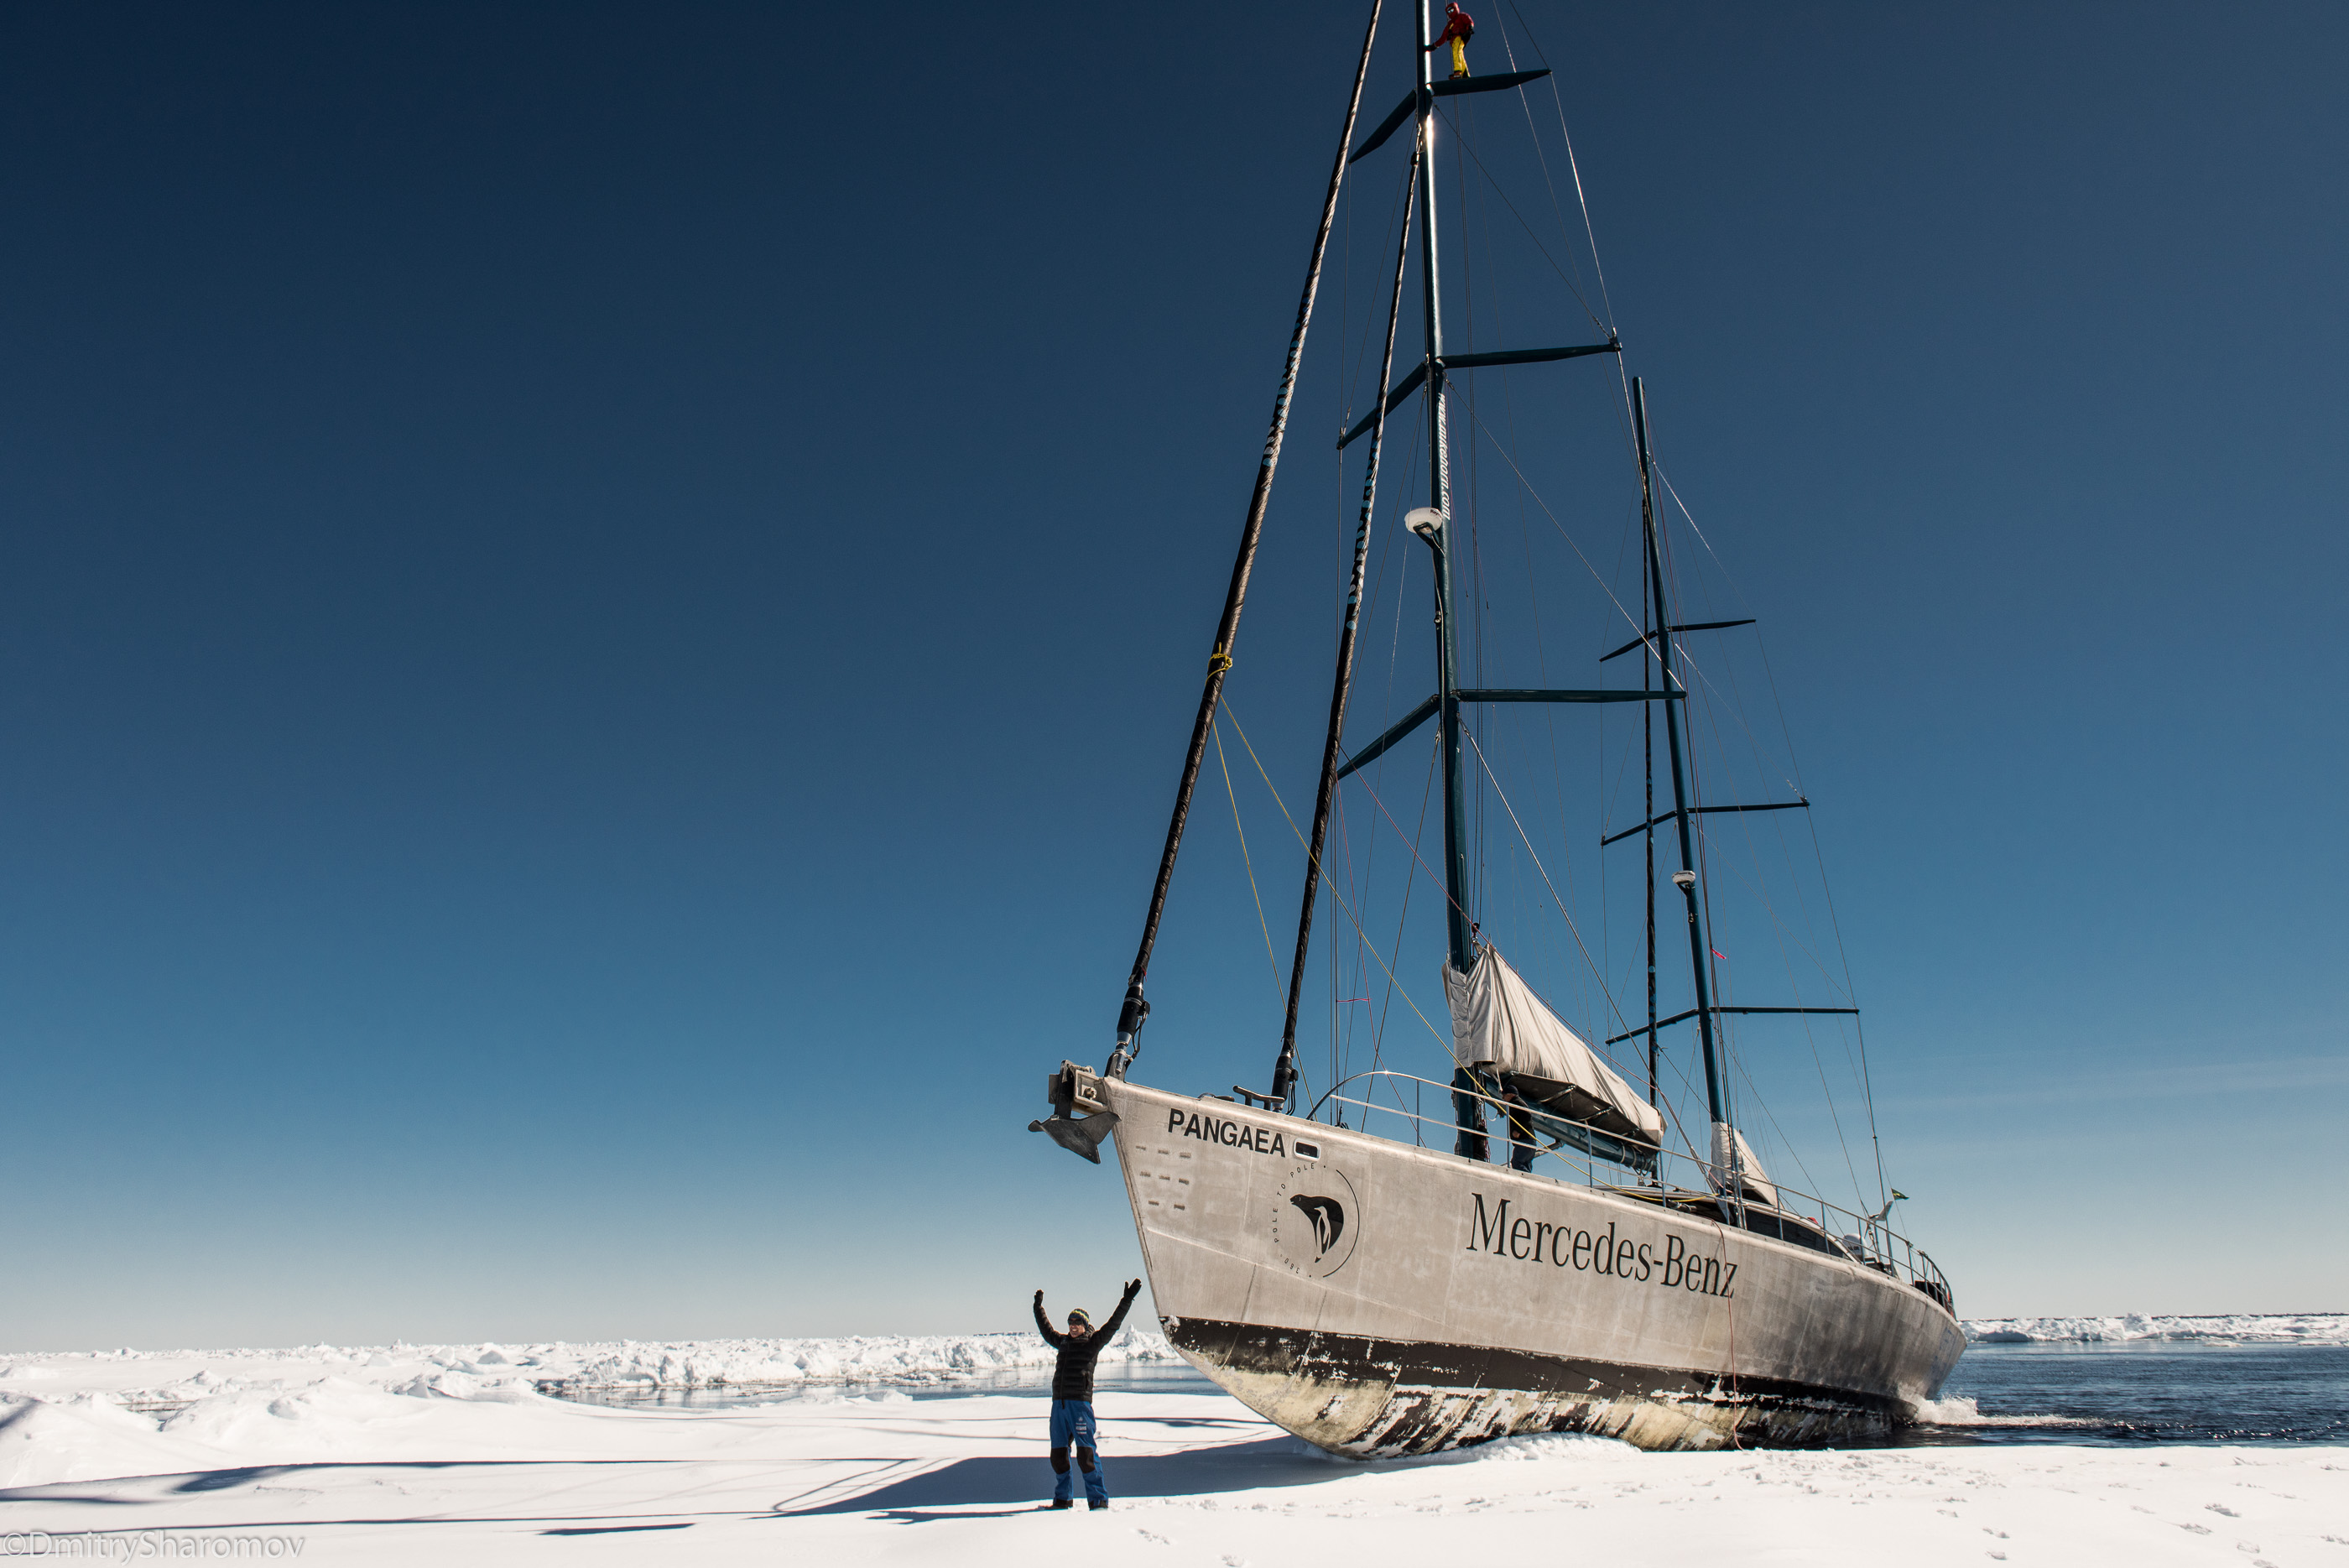 POLE2POLE expedition. Pangaea sailing in Antarctica